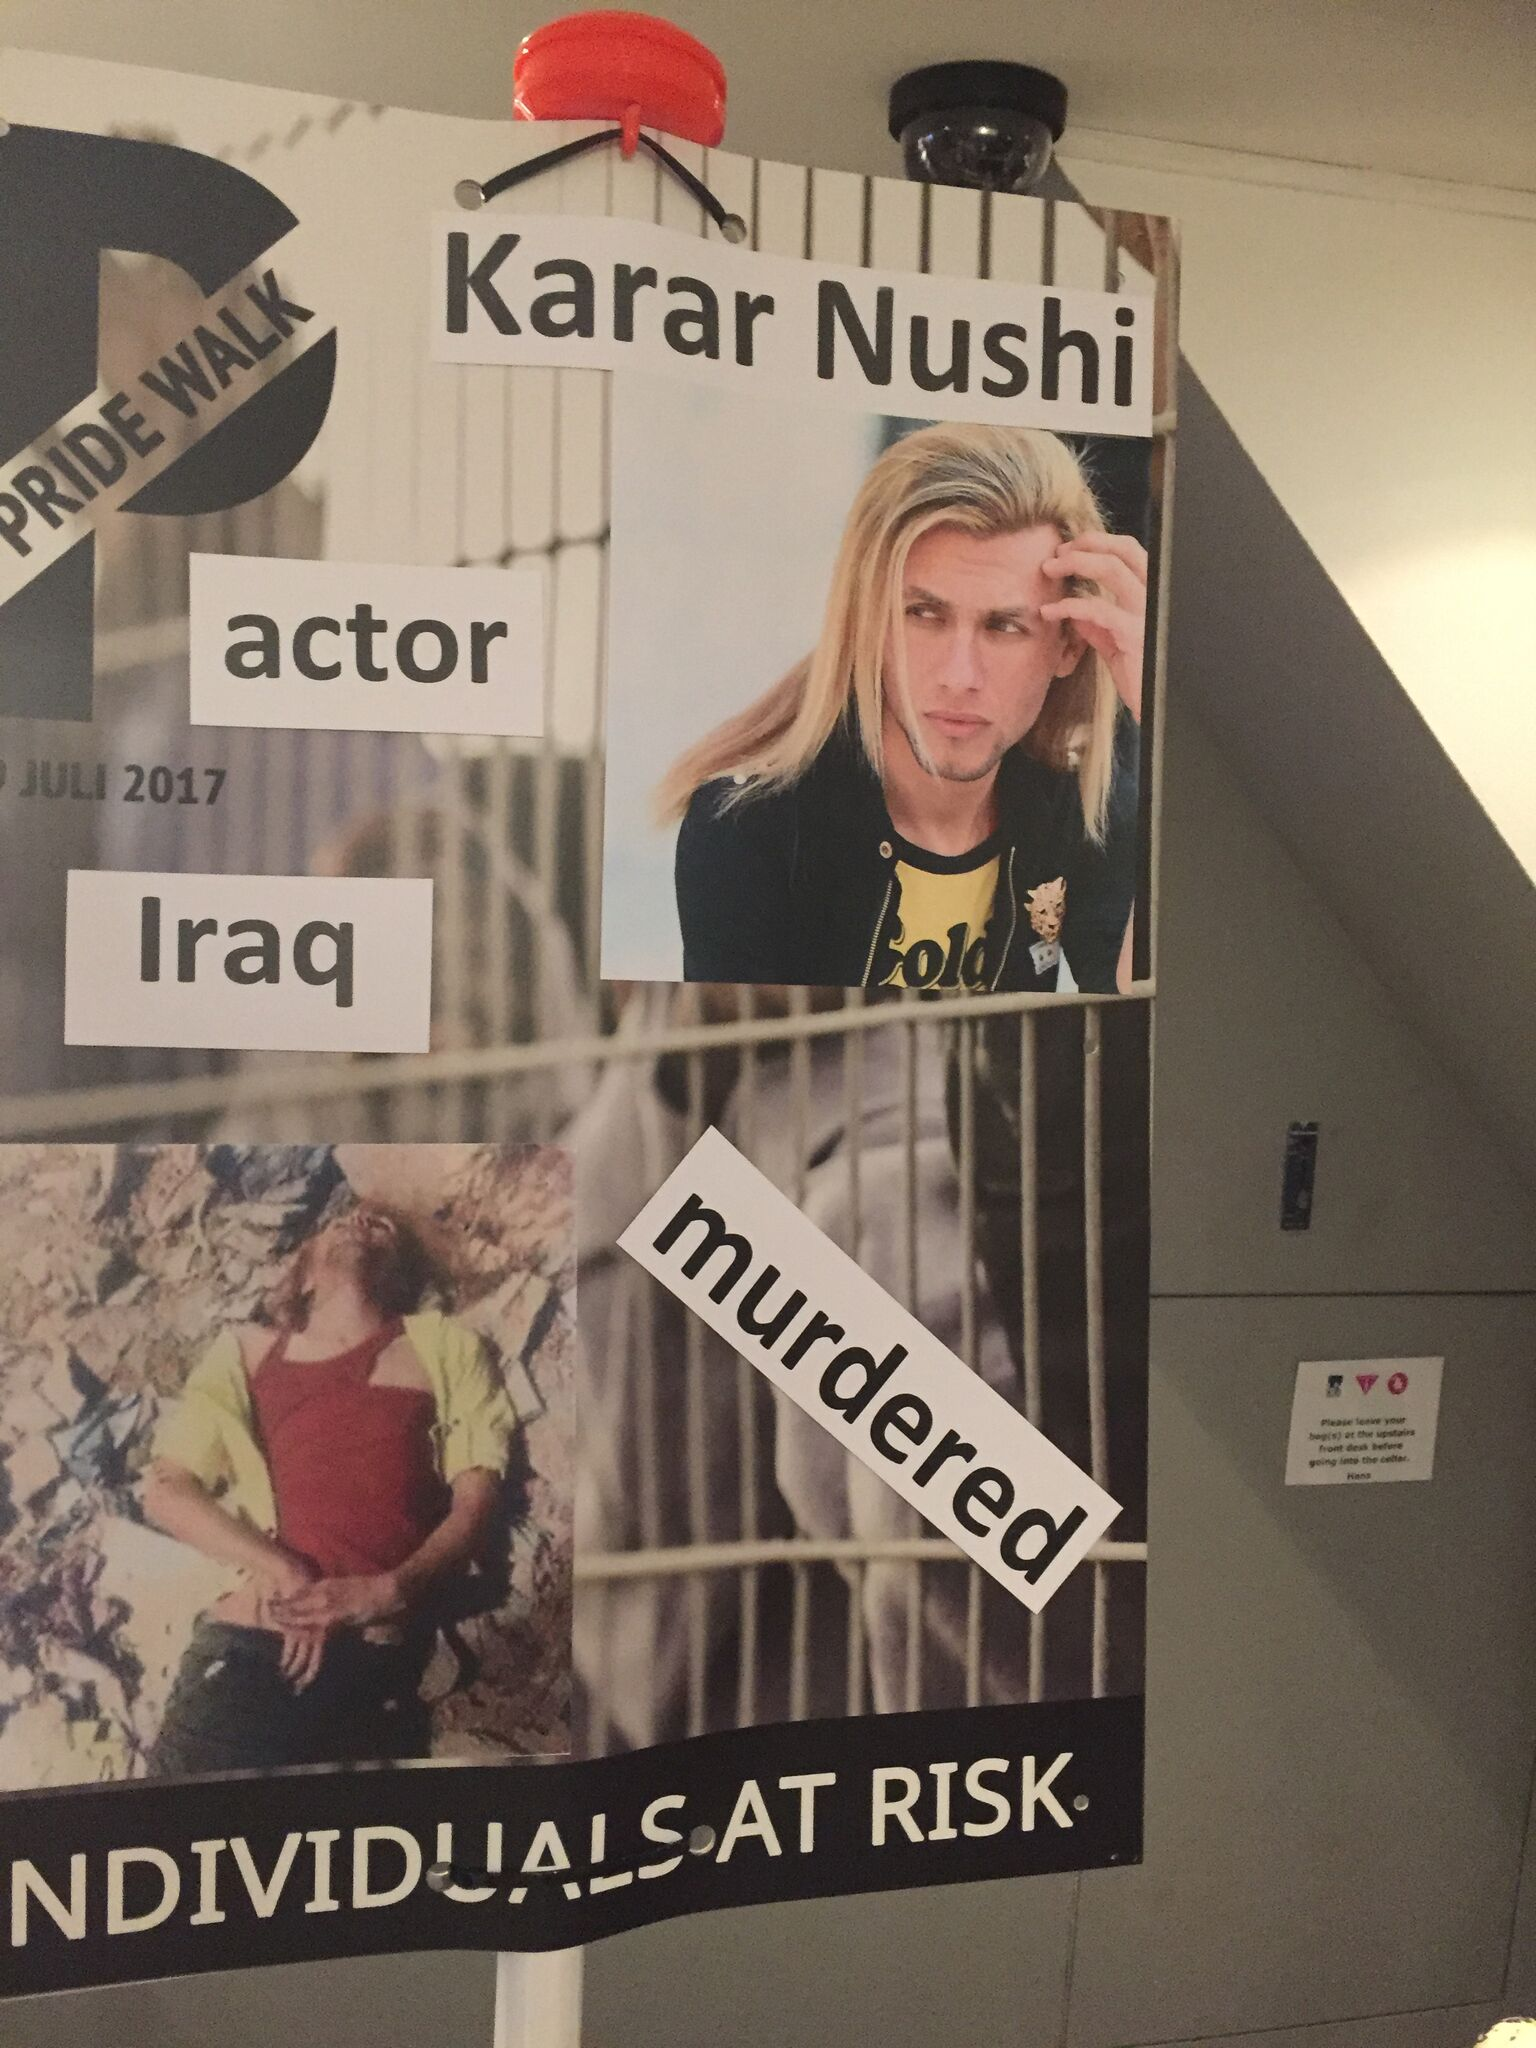 Memorial at a Pride Walk in 2017 focuses on the murder of Iraqi actor/model Karar Nushi, who had been accused of being gay (Photo courtesy of Pride Walk)